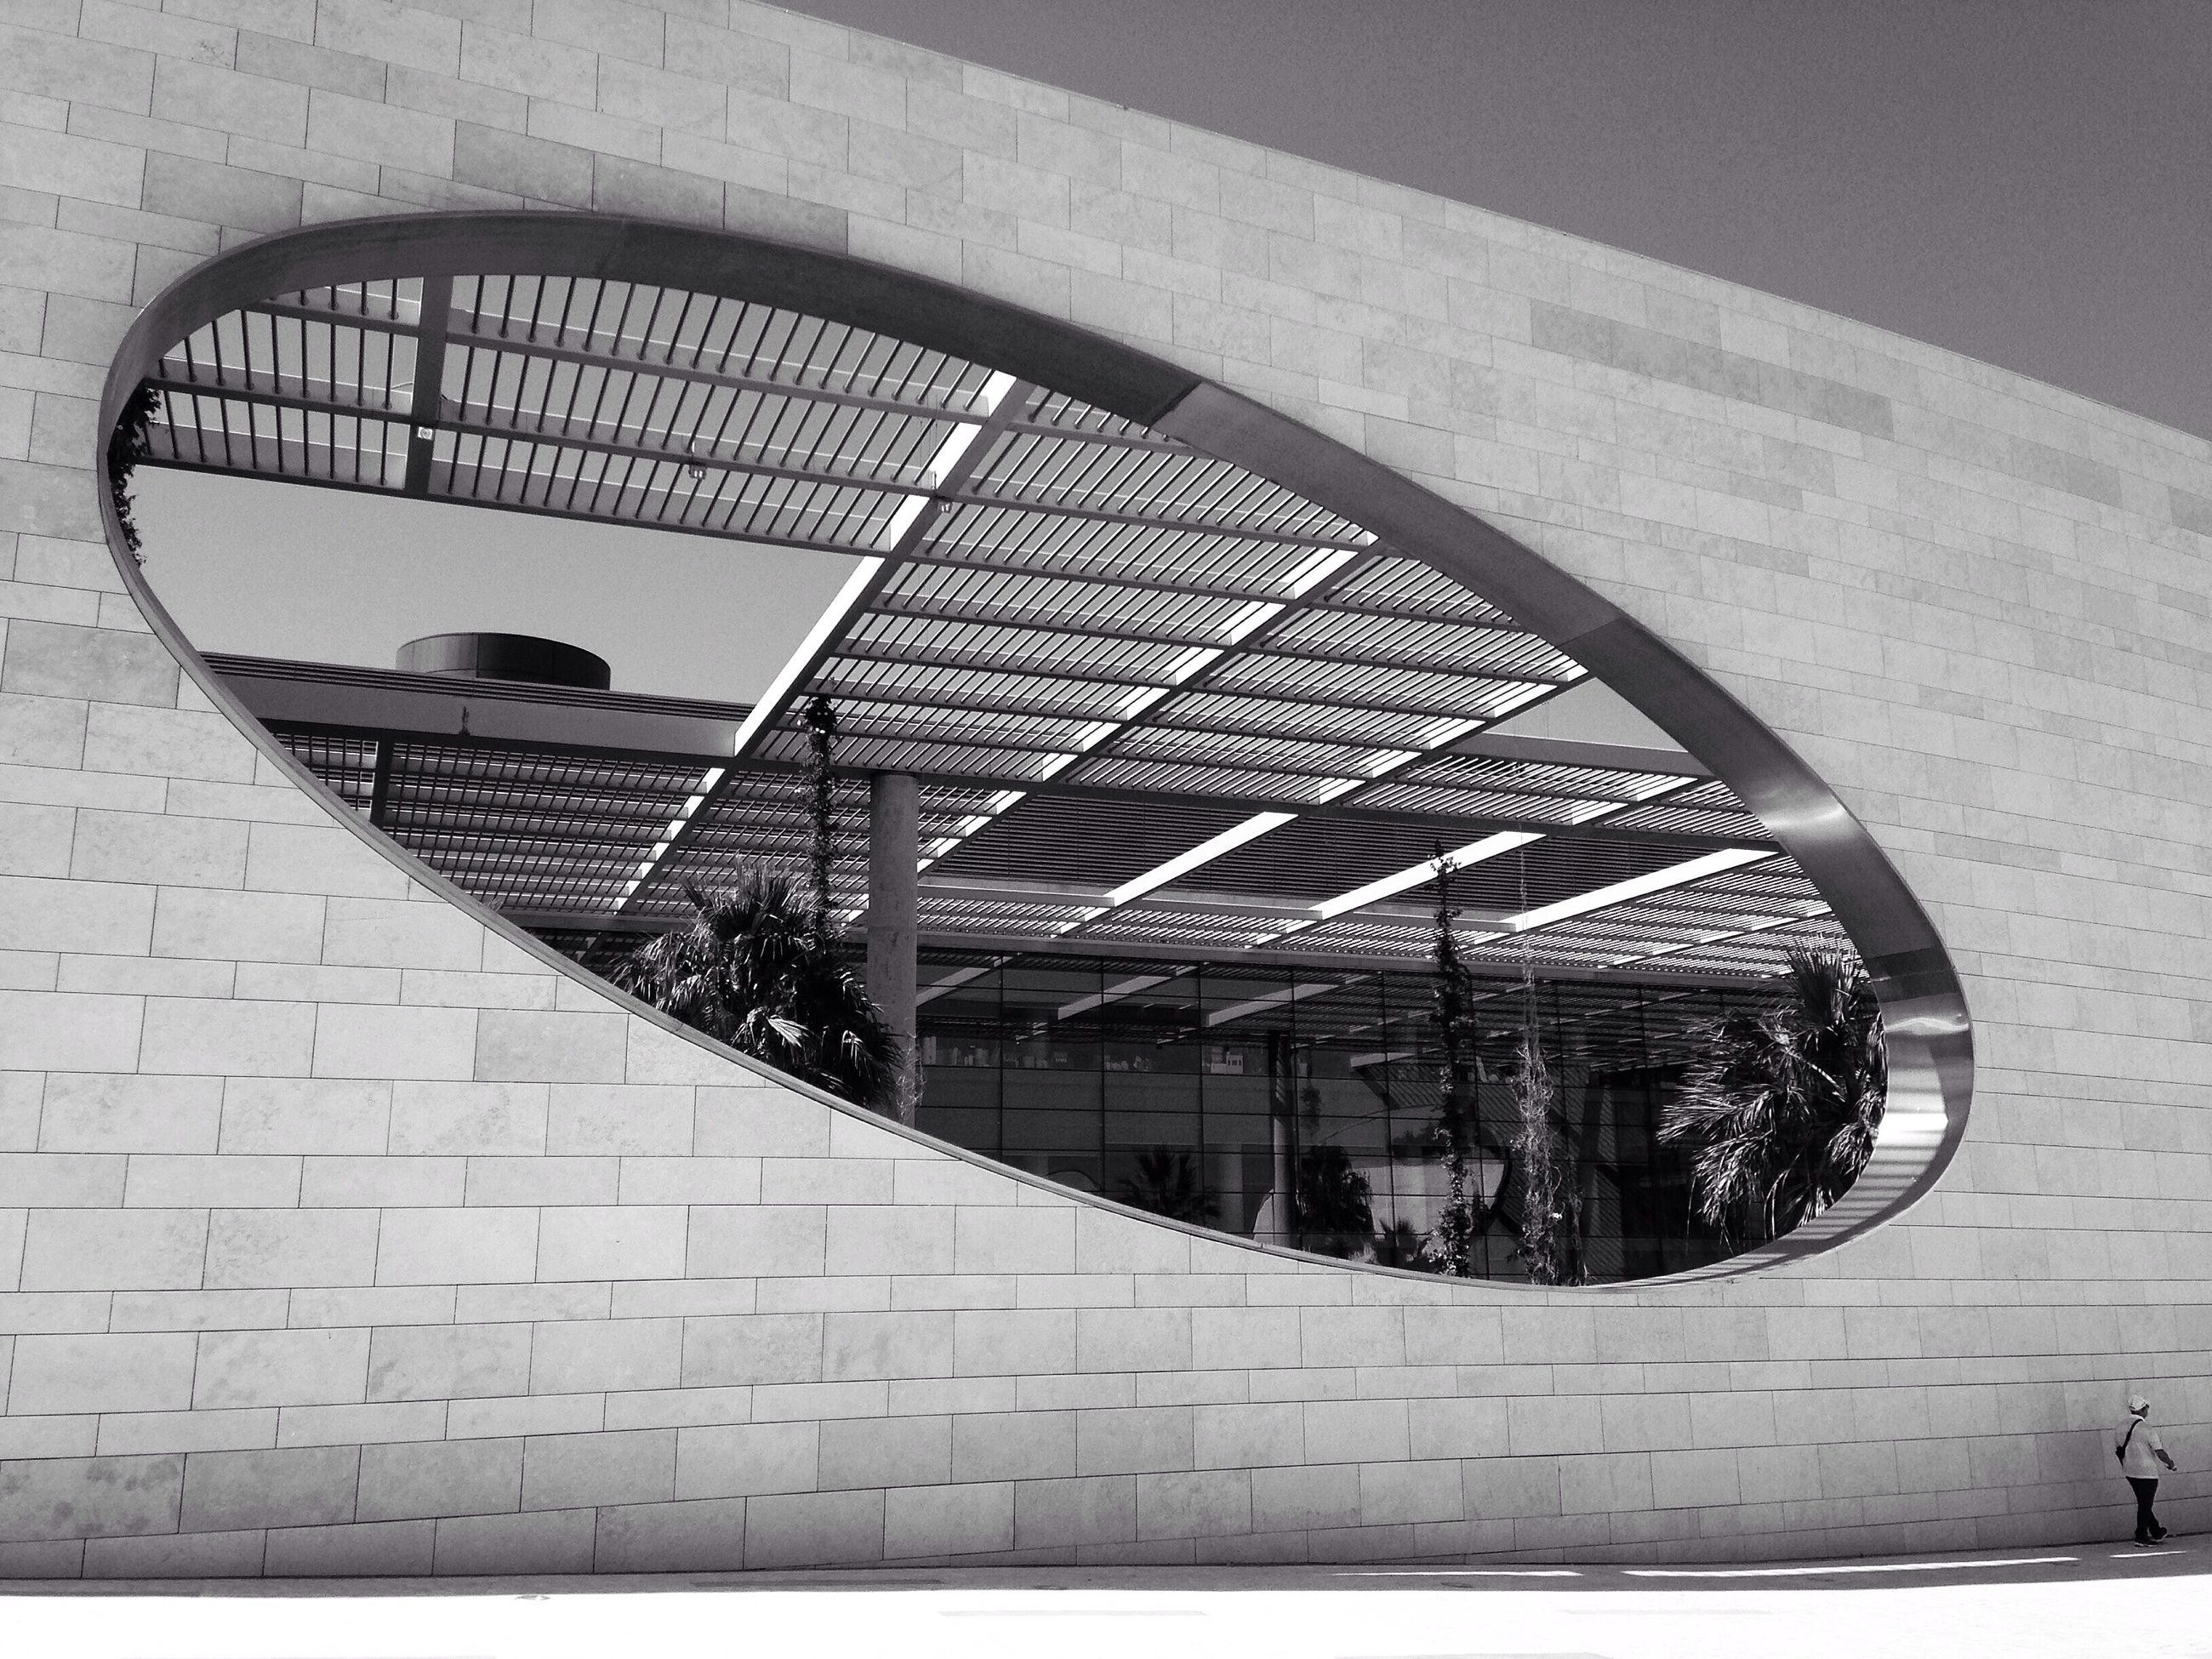 built structure, architecture, day, no people, stationary, geometric shape